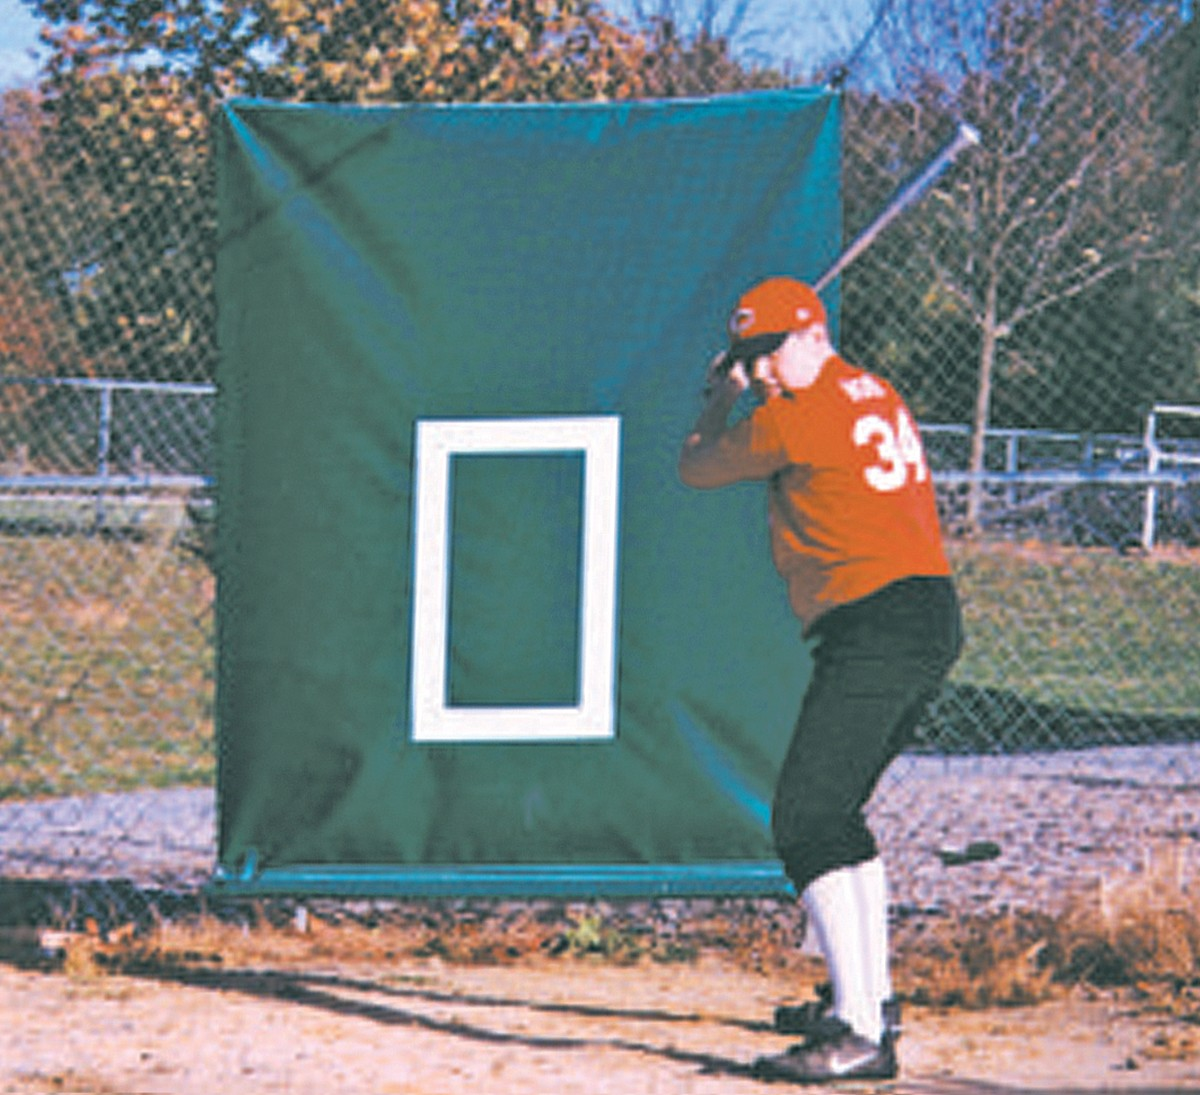 CageSaver Batting Cage Net Backdrop Protector, 22 oz